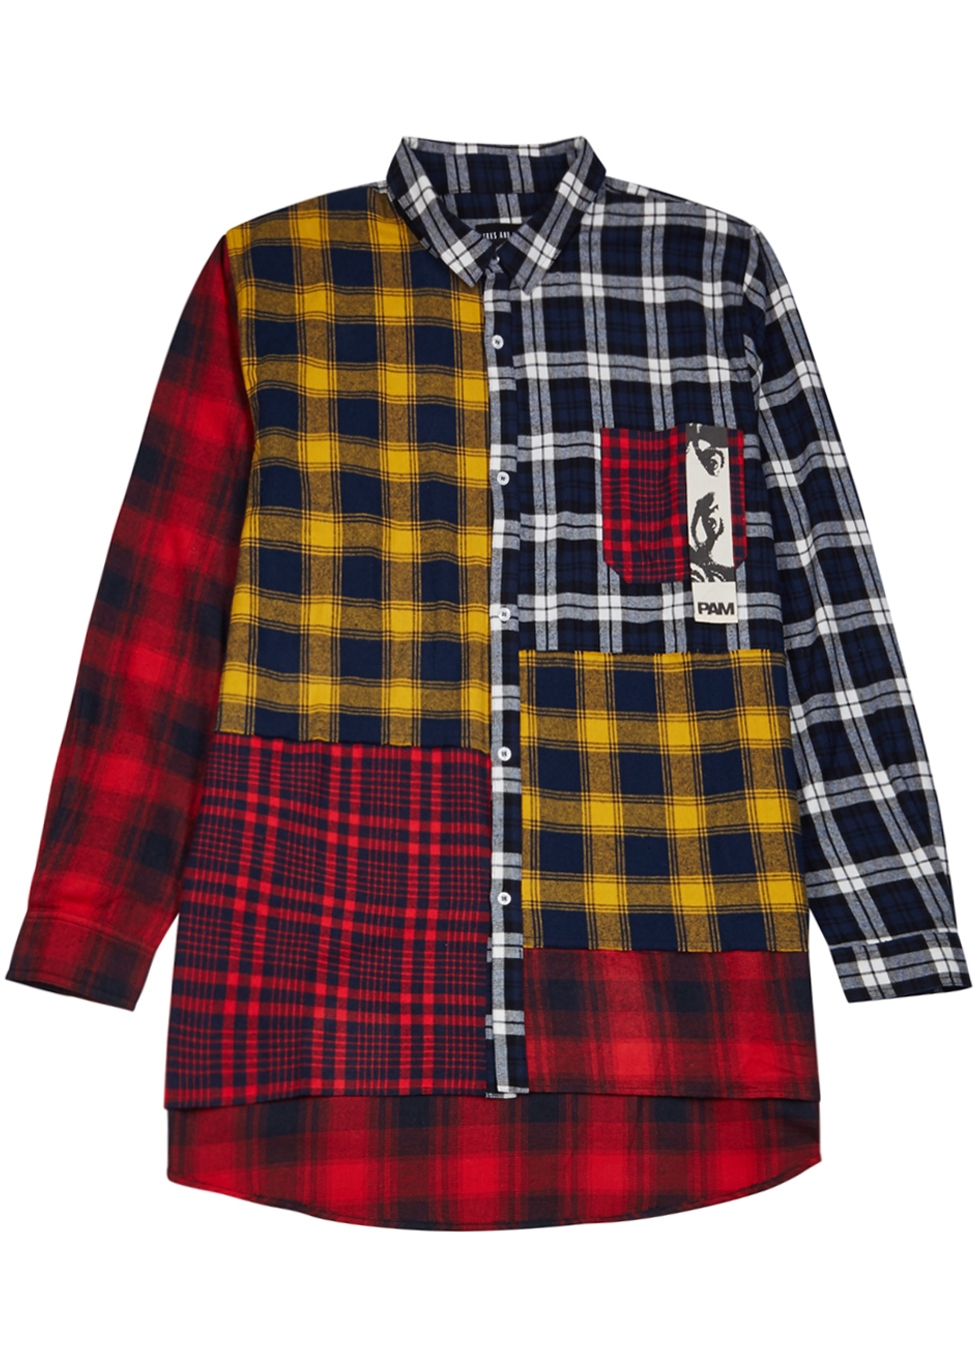 PERKS AND MINI Axelrod Checked Cotton Shirt in Multicolour